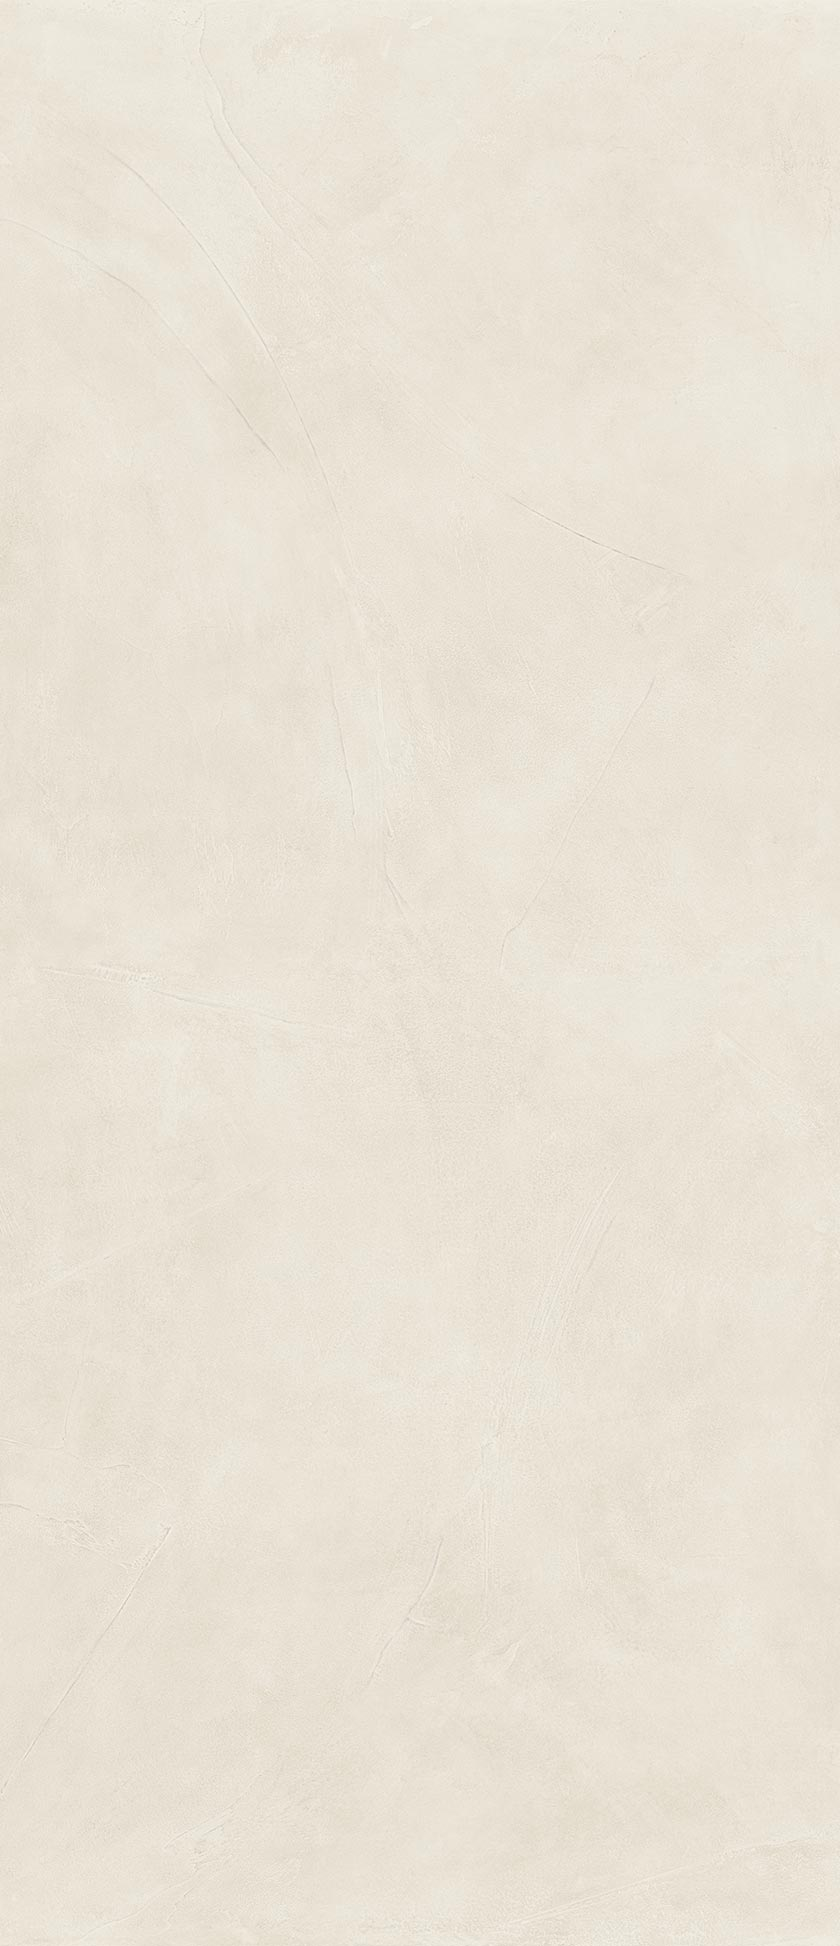 atlas-plan-prism-cotton-large-rectified-surface-in-porcelain-tile